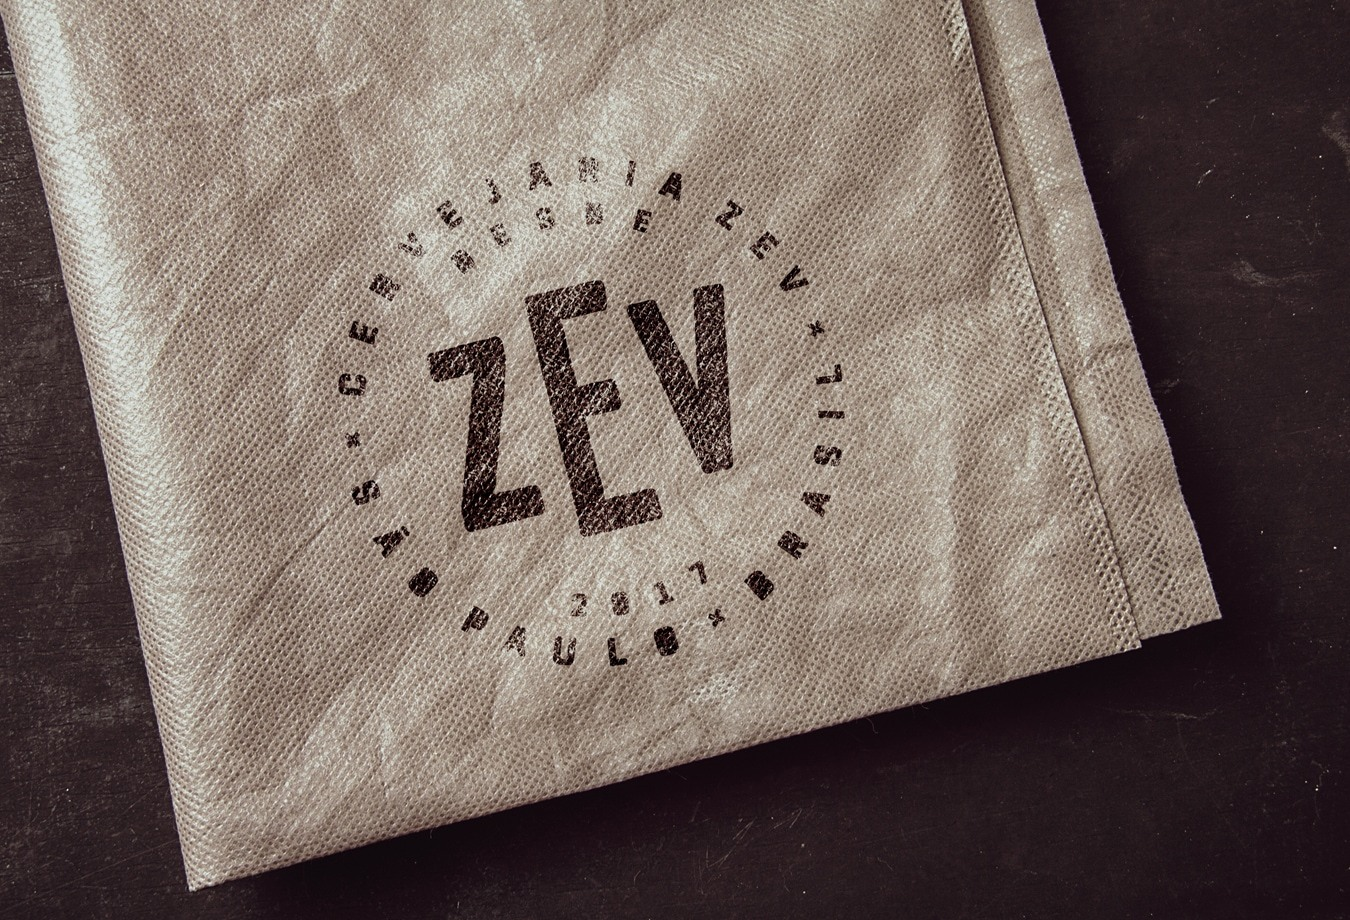 06-zev-visualidentity